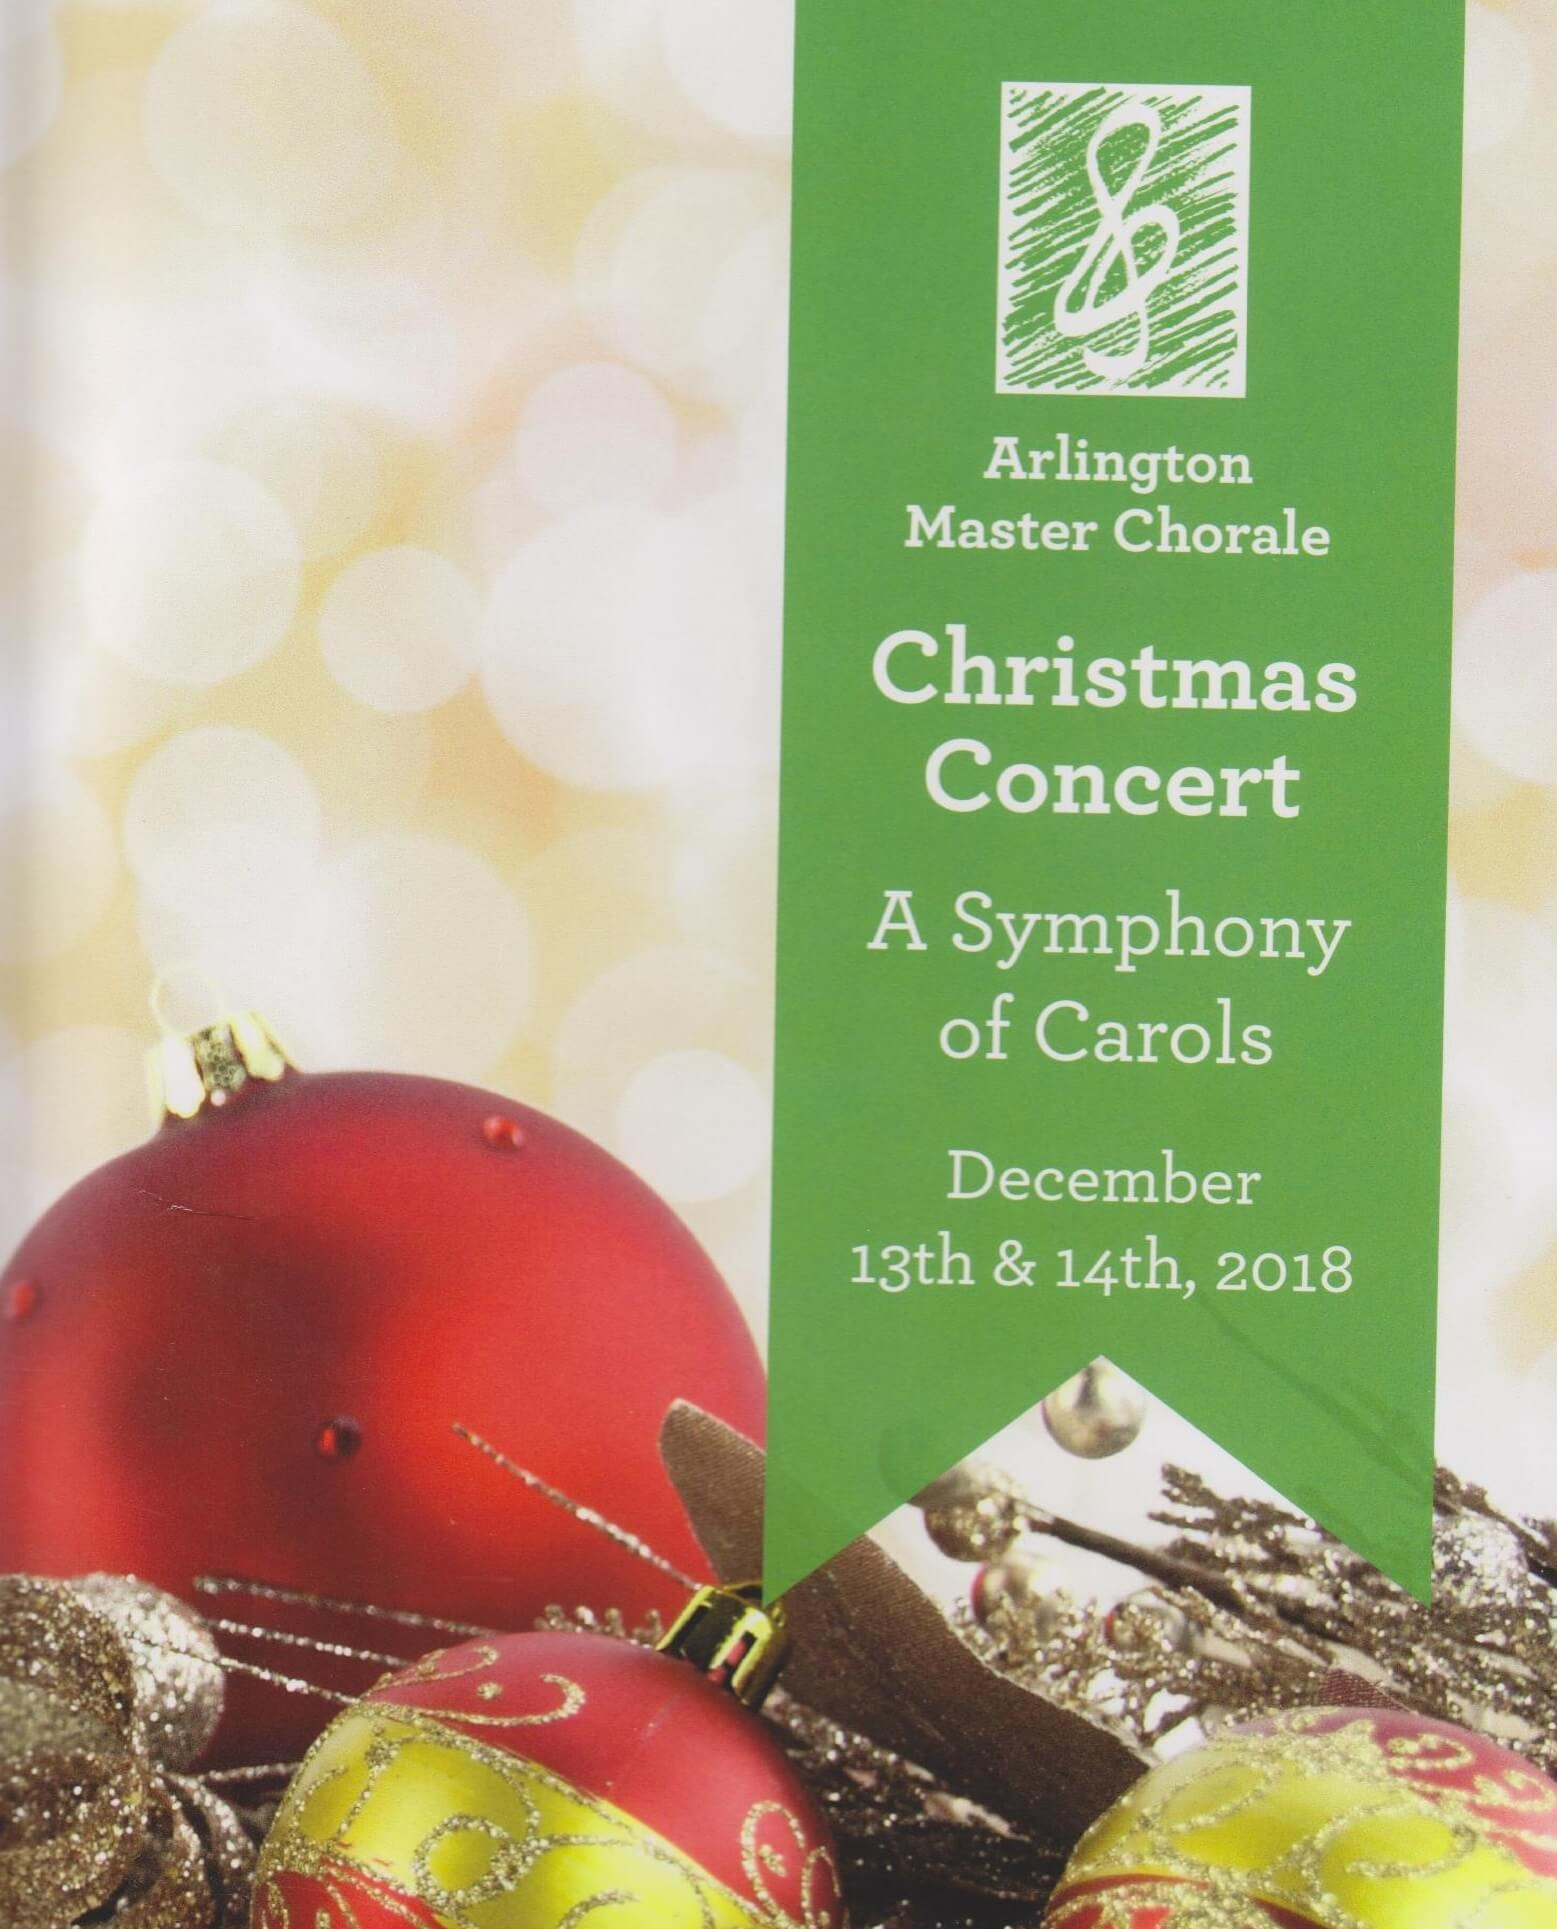 Our annual Christmas Concert including holiday favorites as Deck the Hall, It came Upon the Midnight Clear, and God Rest Ye, with a special performance by the Arlington Children's Chorus.